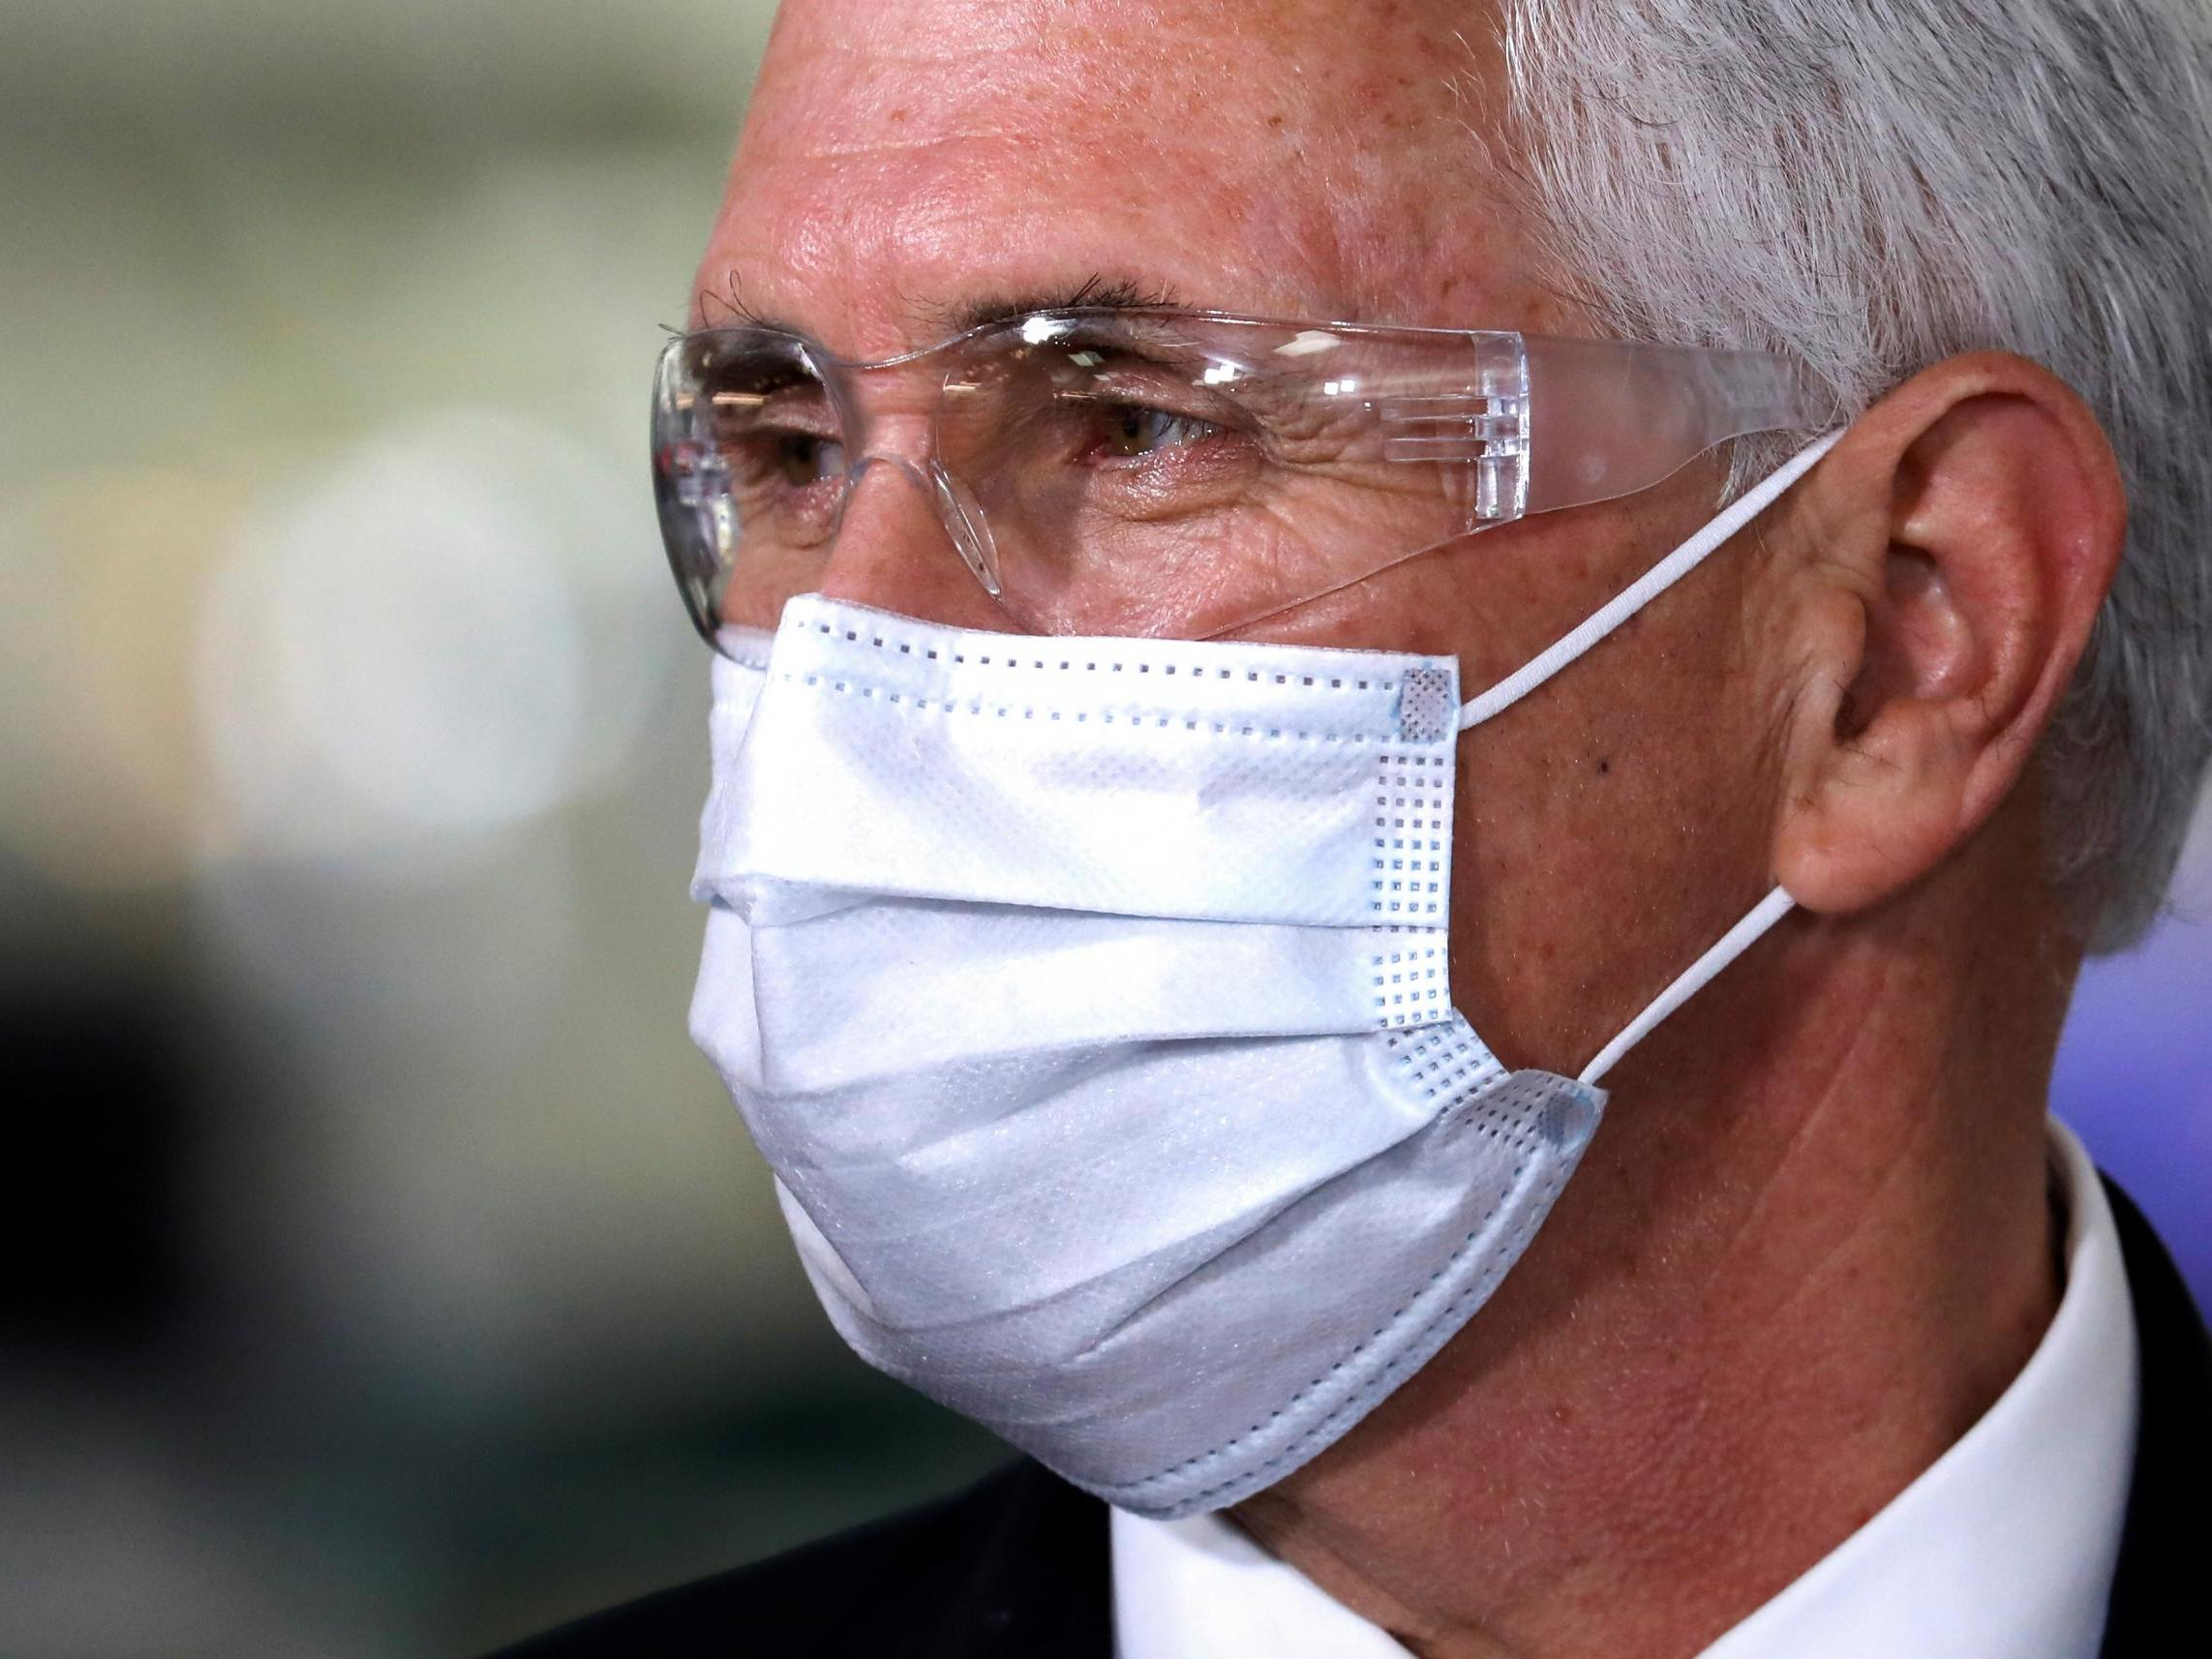 Reporter who contradicted Mike Pence's wife on face mask dispute banned from future trips photo